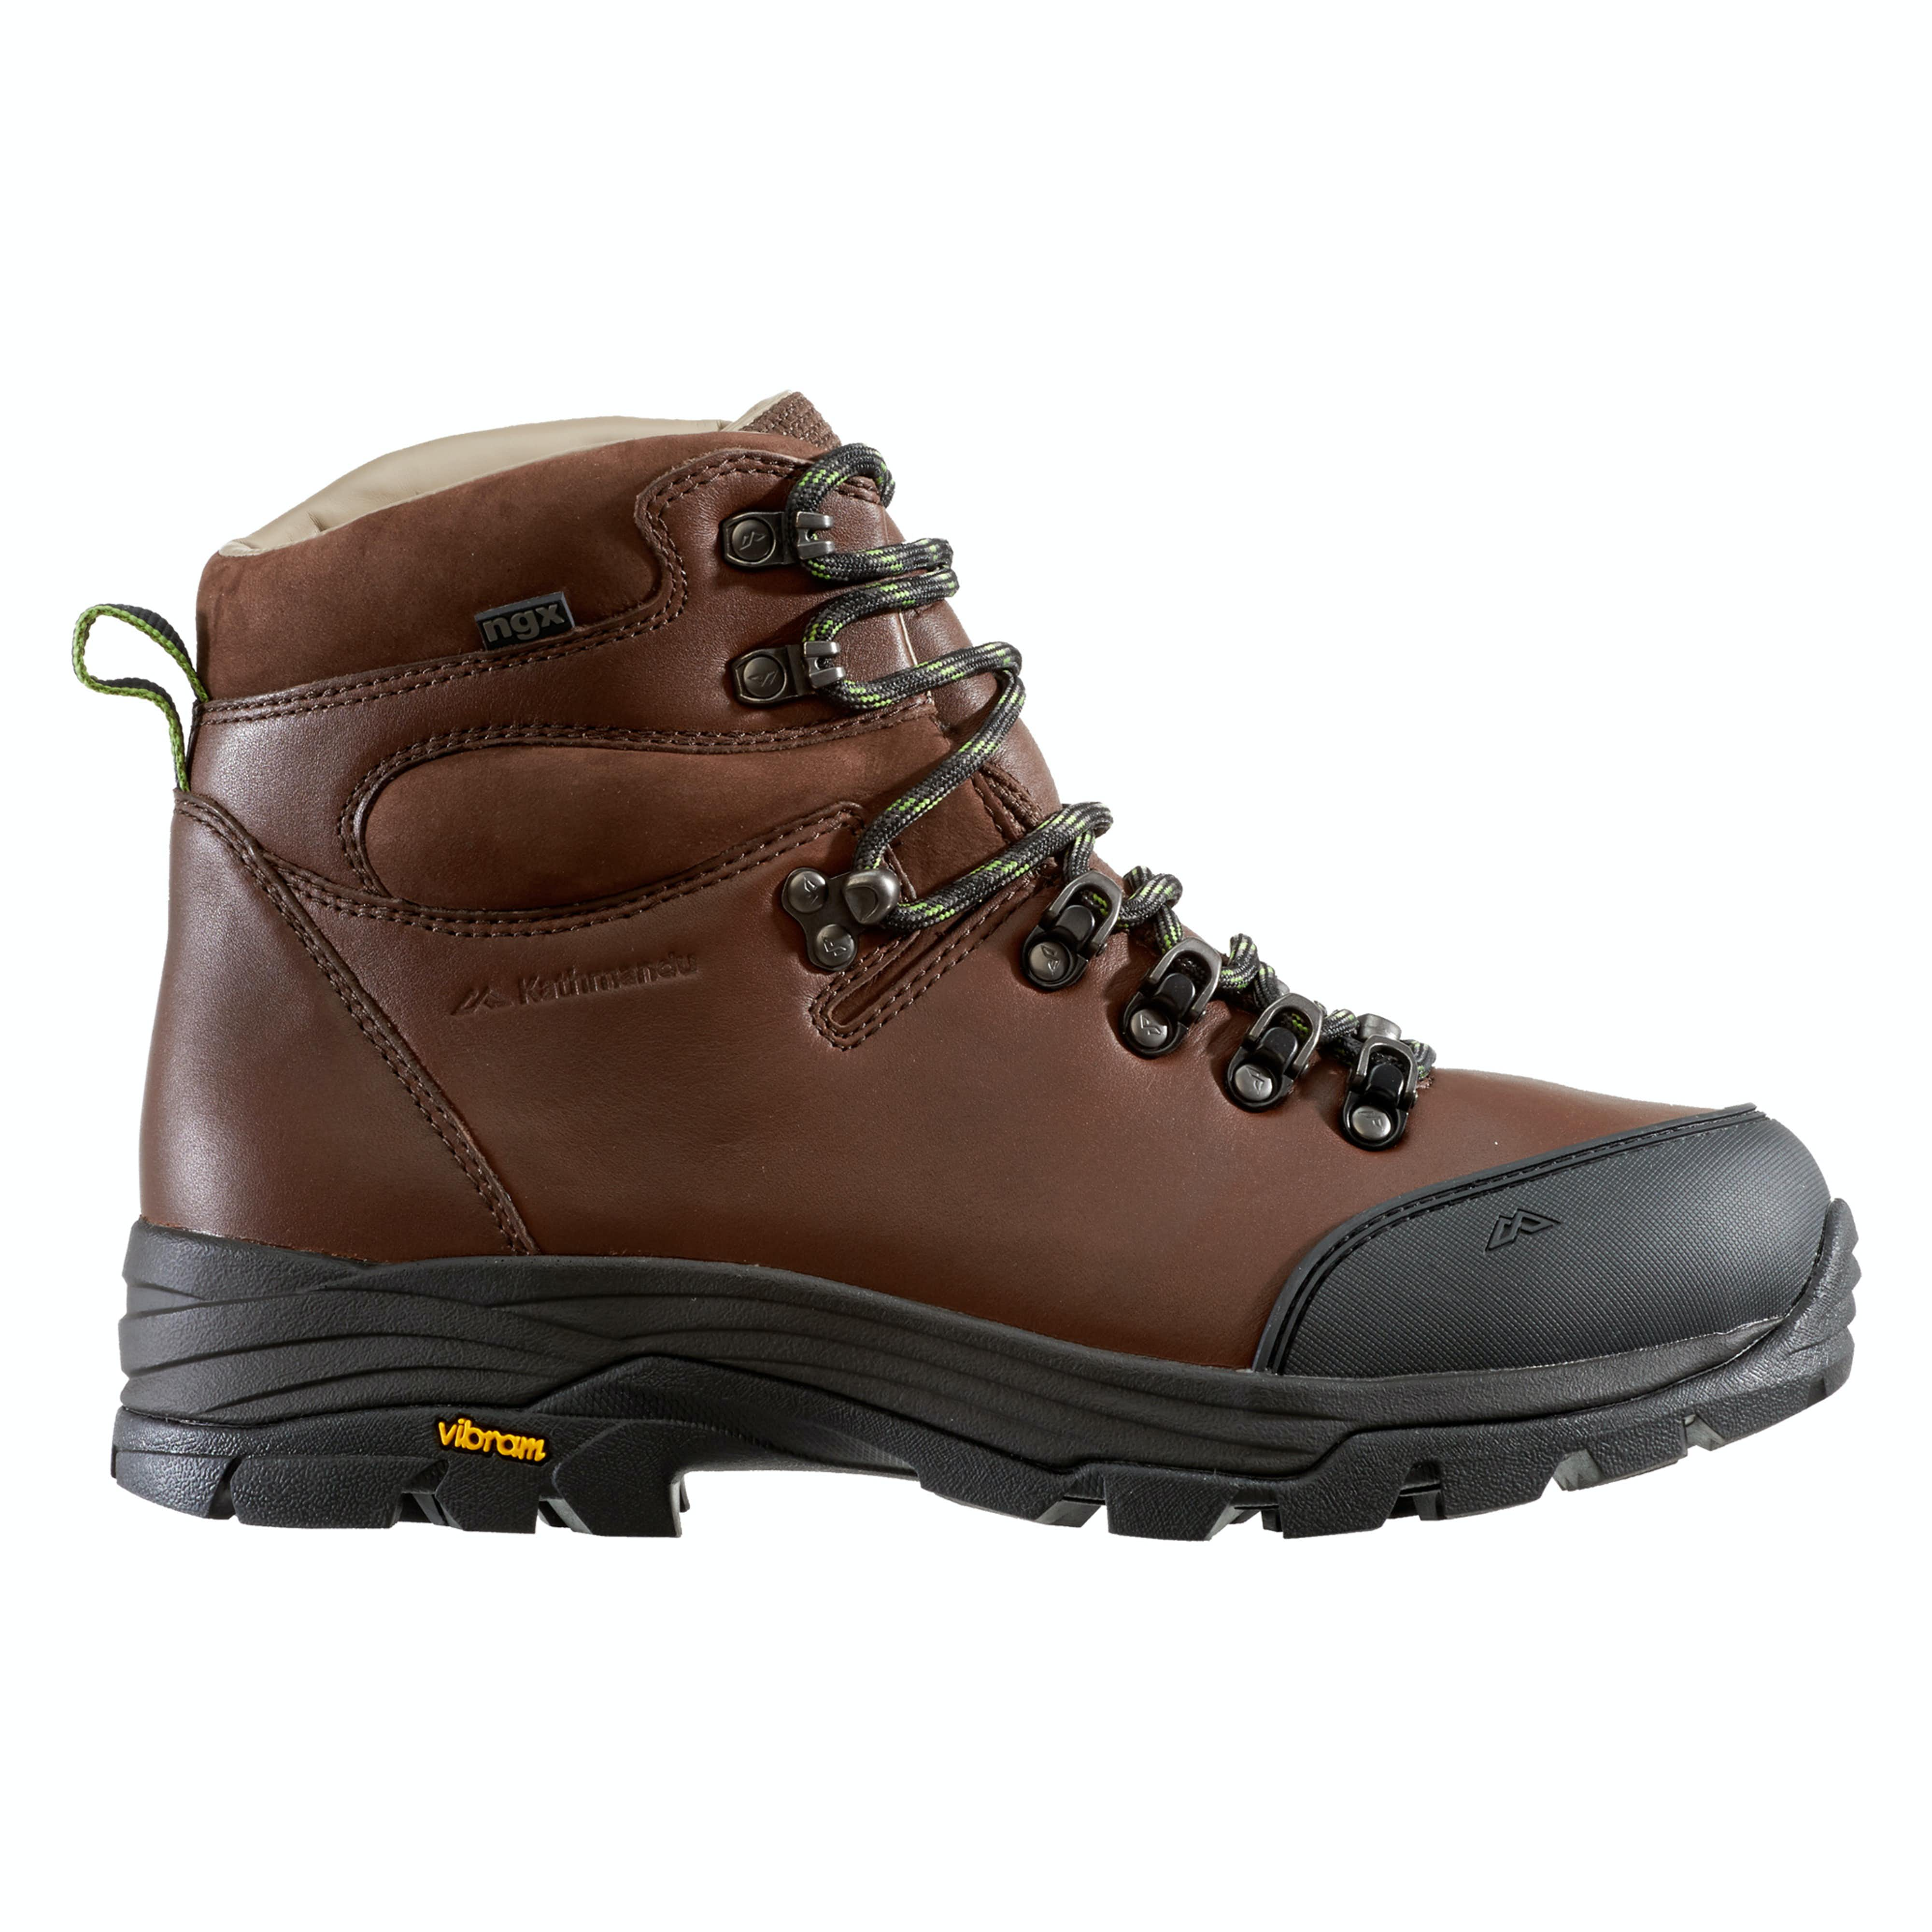 8fc63623ca9 Tiber Men's ngx Leather Hiking Boots